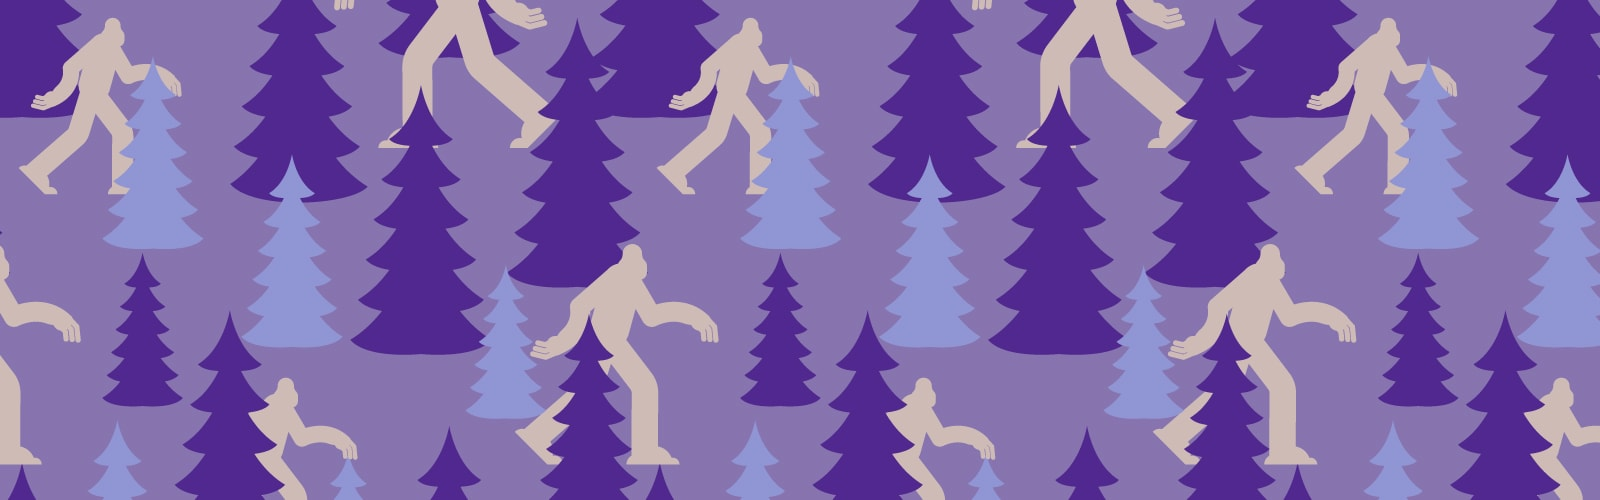 A purple banner with silhouettes of trees and the imprint of a great yeti walking among them for a blog post about SEO myths